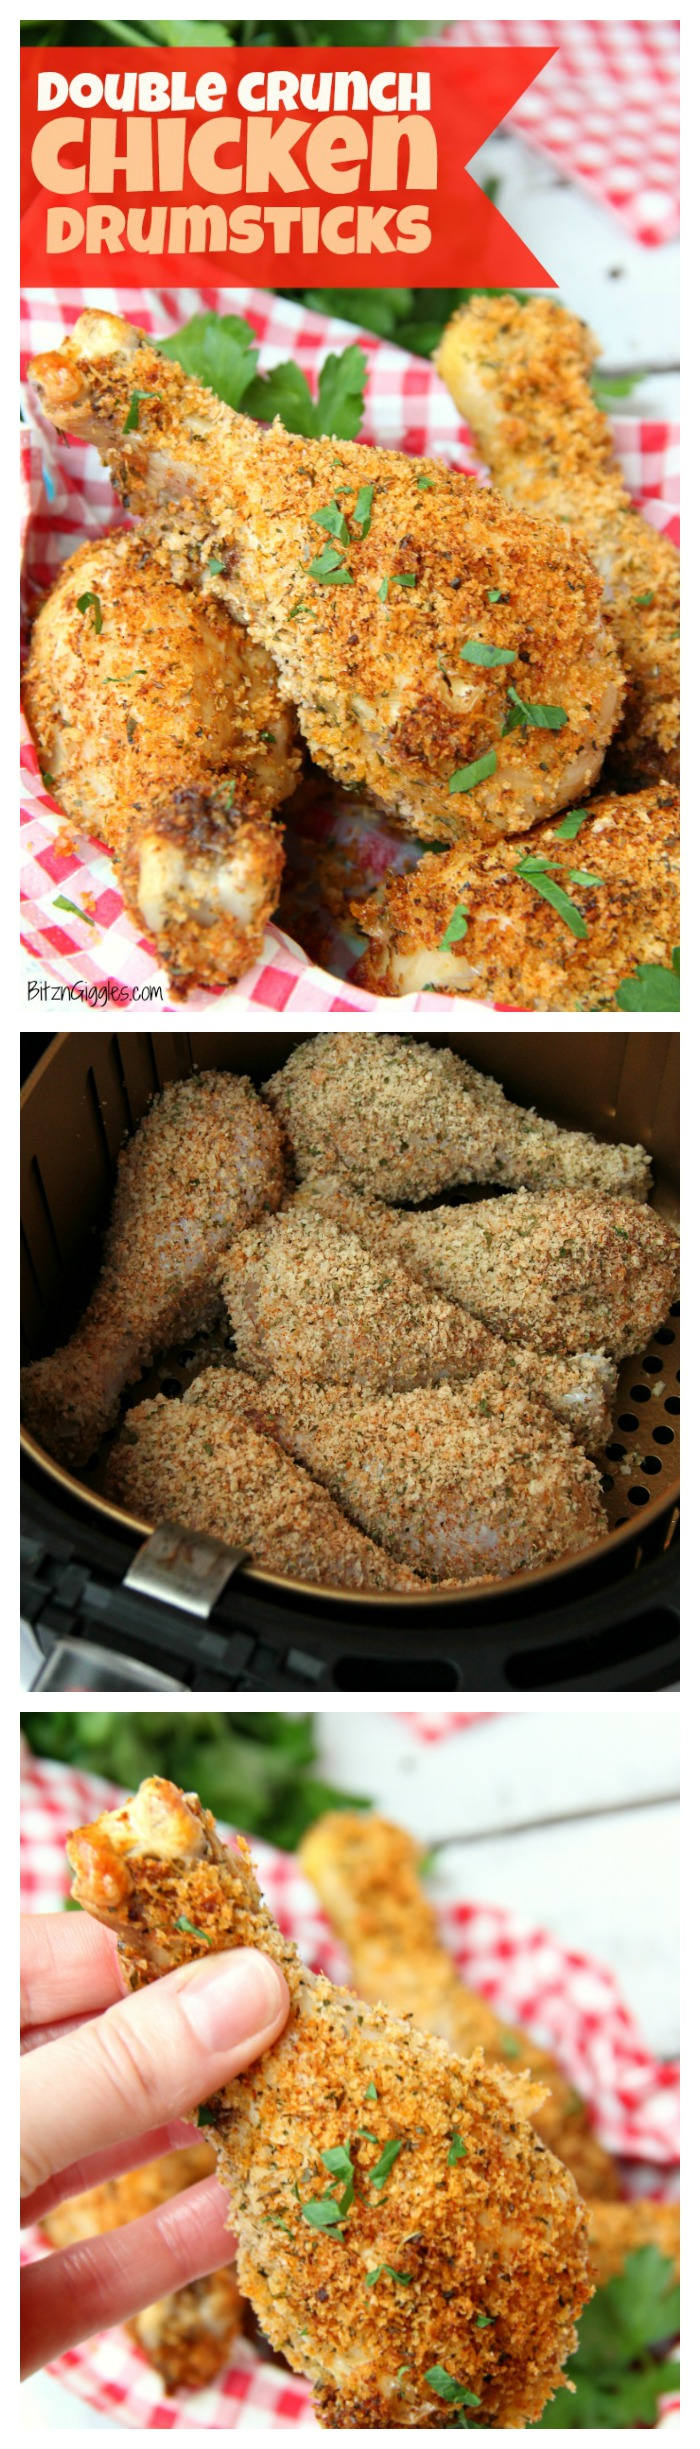 Double Crunch Chicken Drumsticks - These chicken drumsticks are super crunchy on the outside and packed with flavor! Make them in the air fryer or the oven!